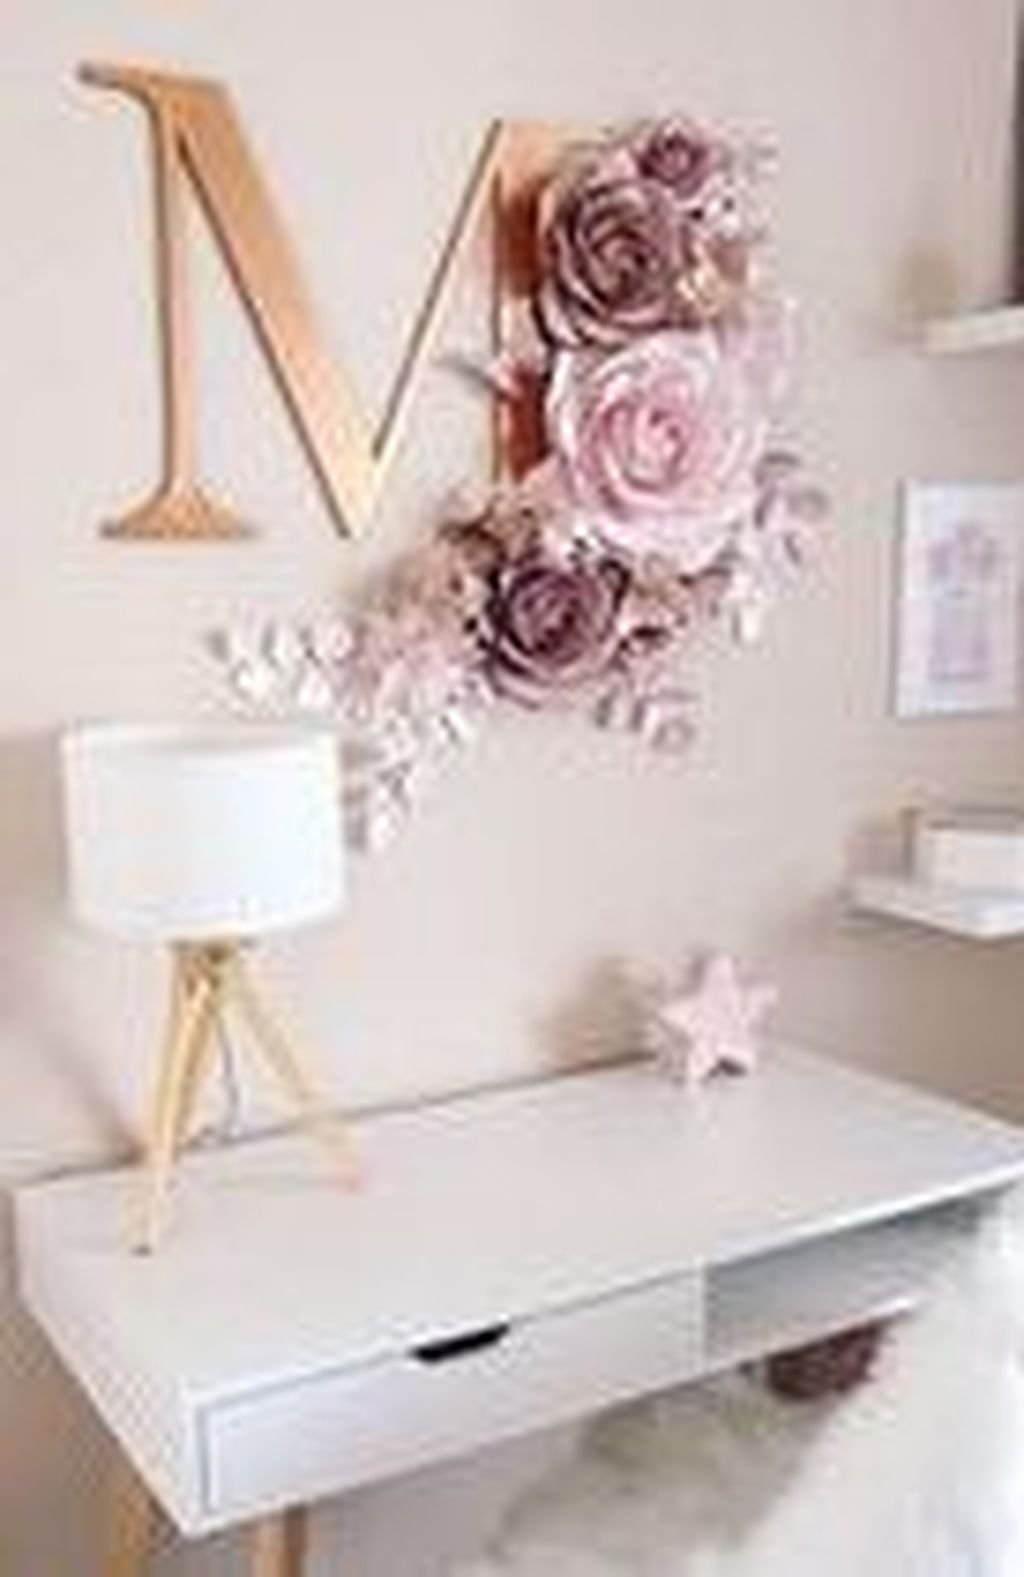 Captivating Girl Workspace Design Ideas That Looks So Cute 12